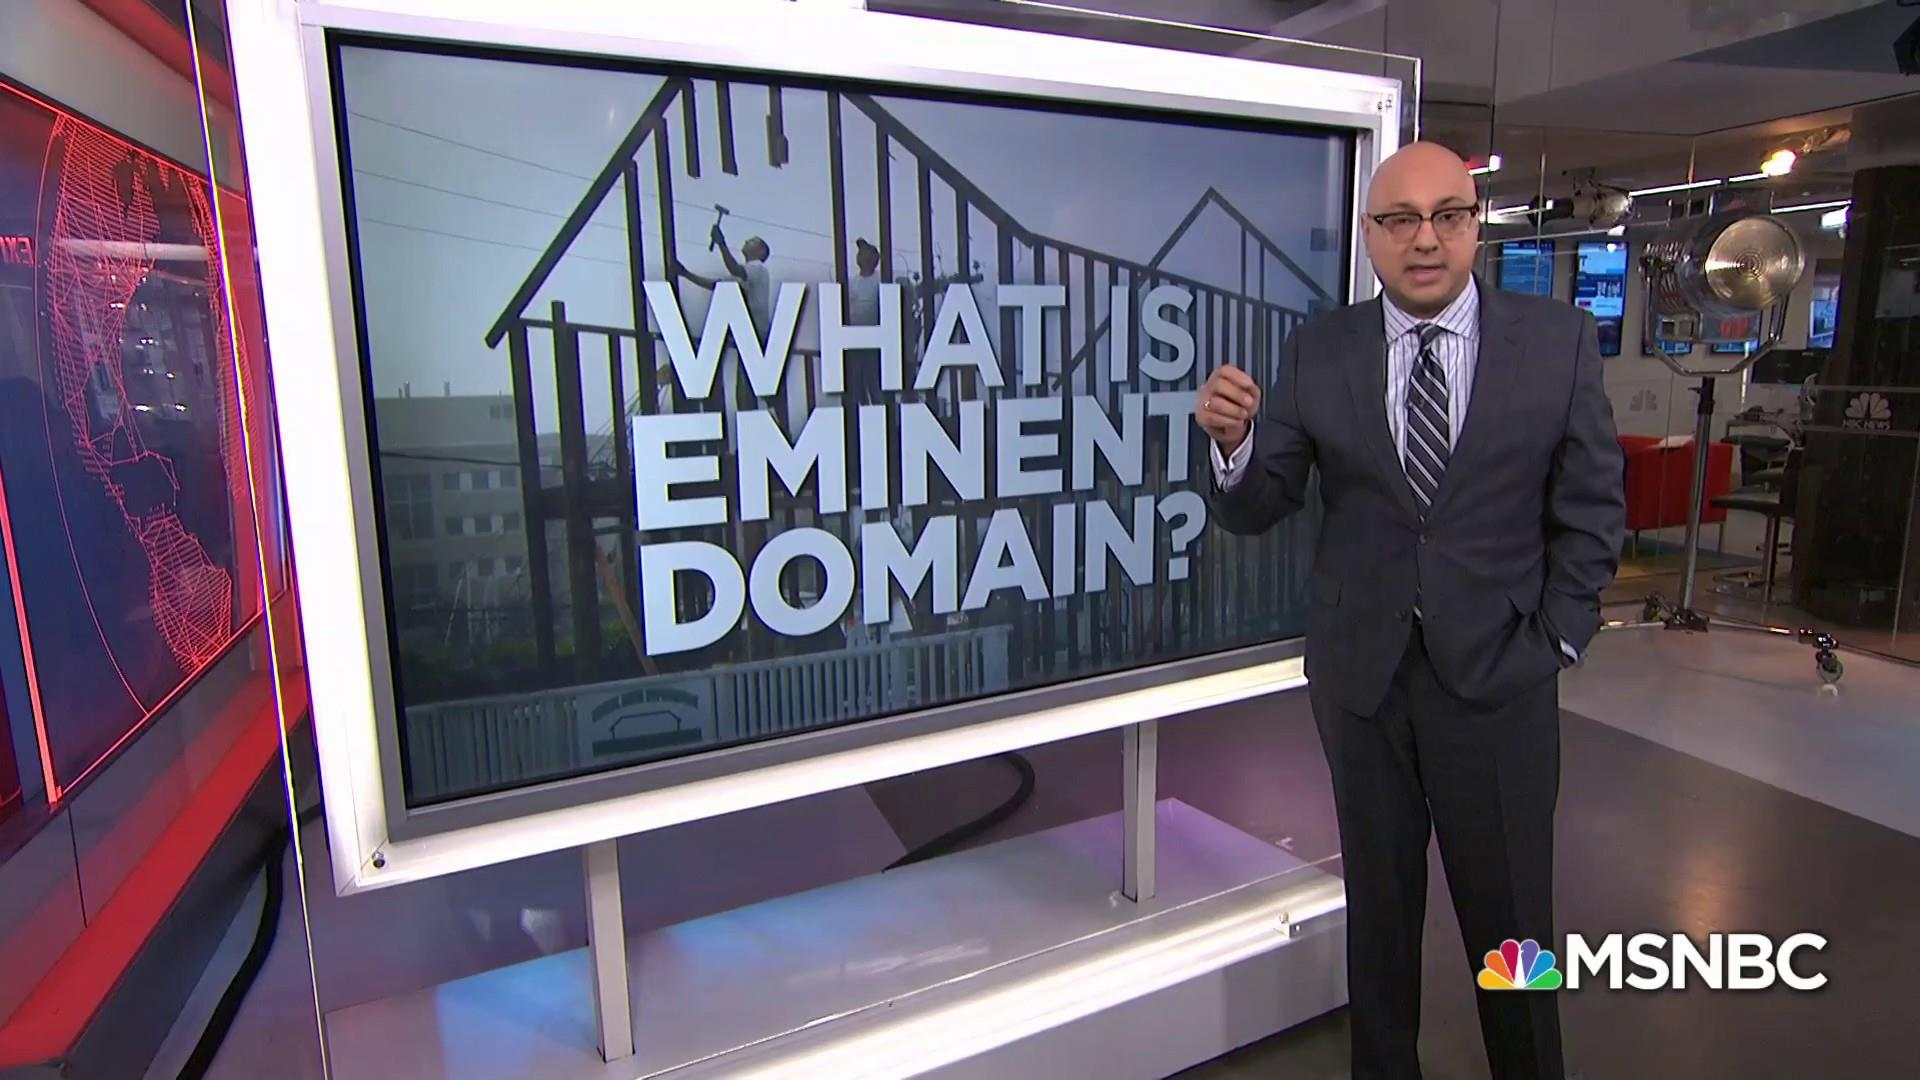 What is eminent domain?